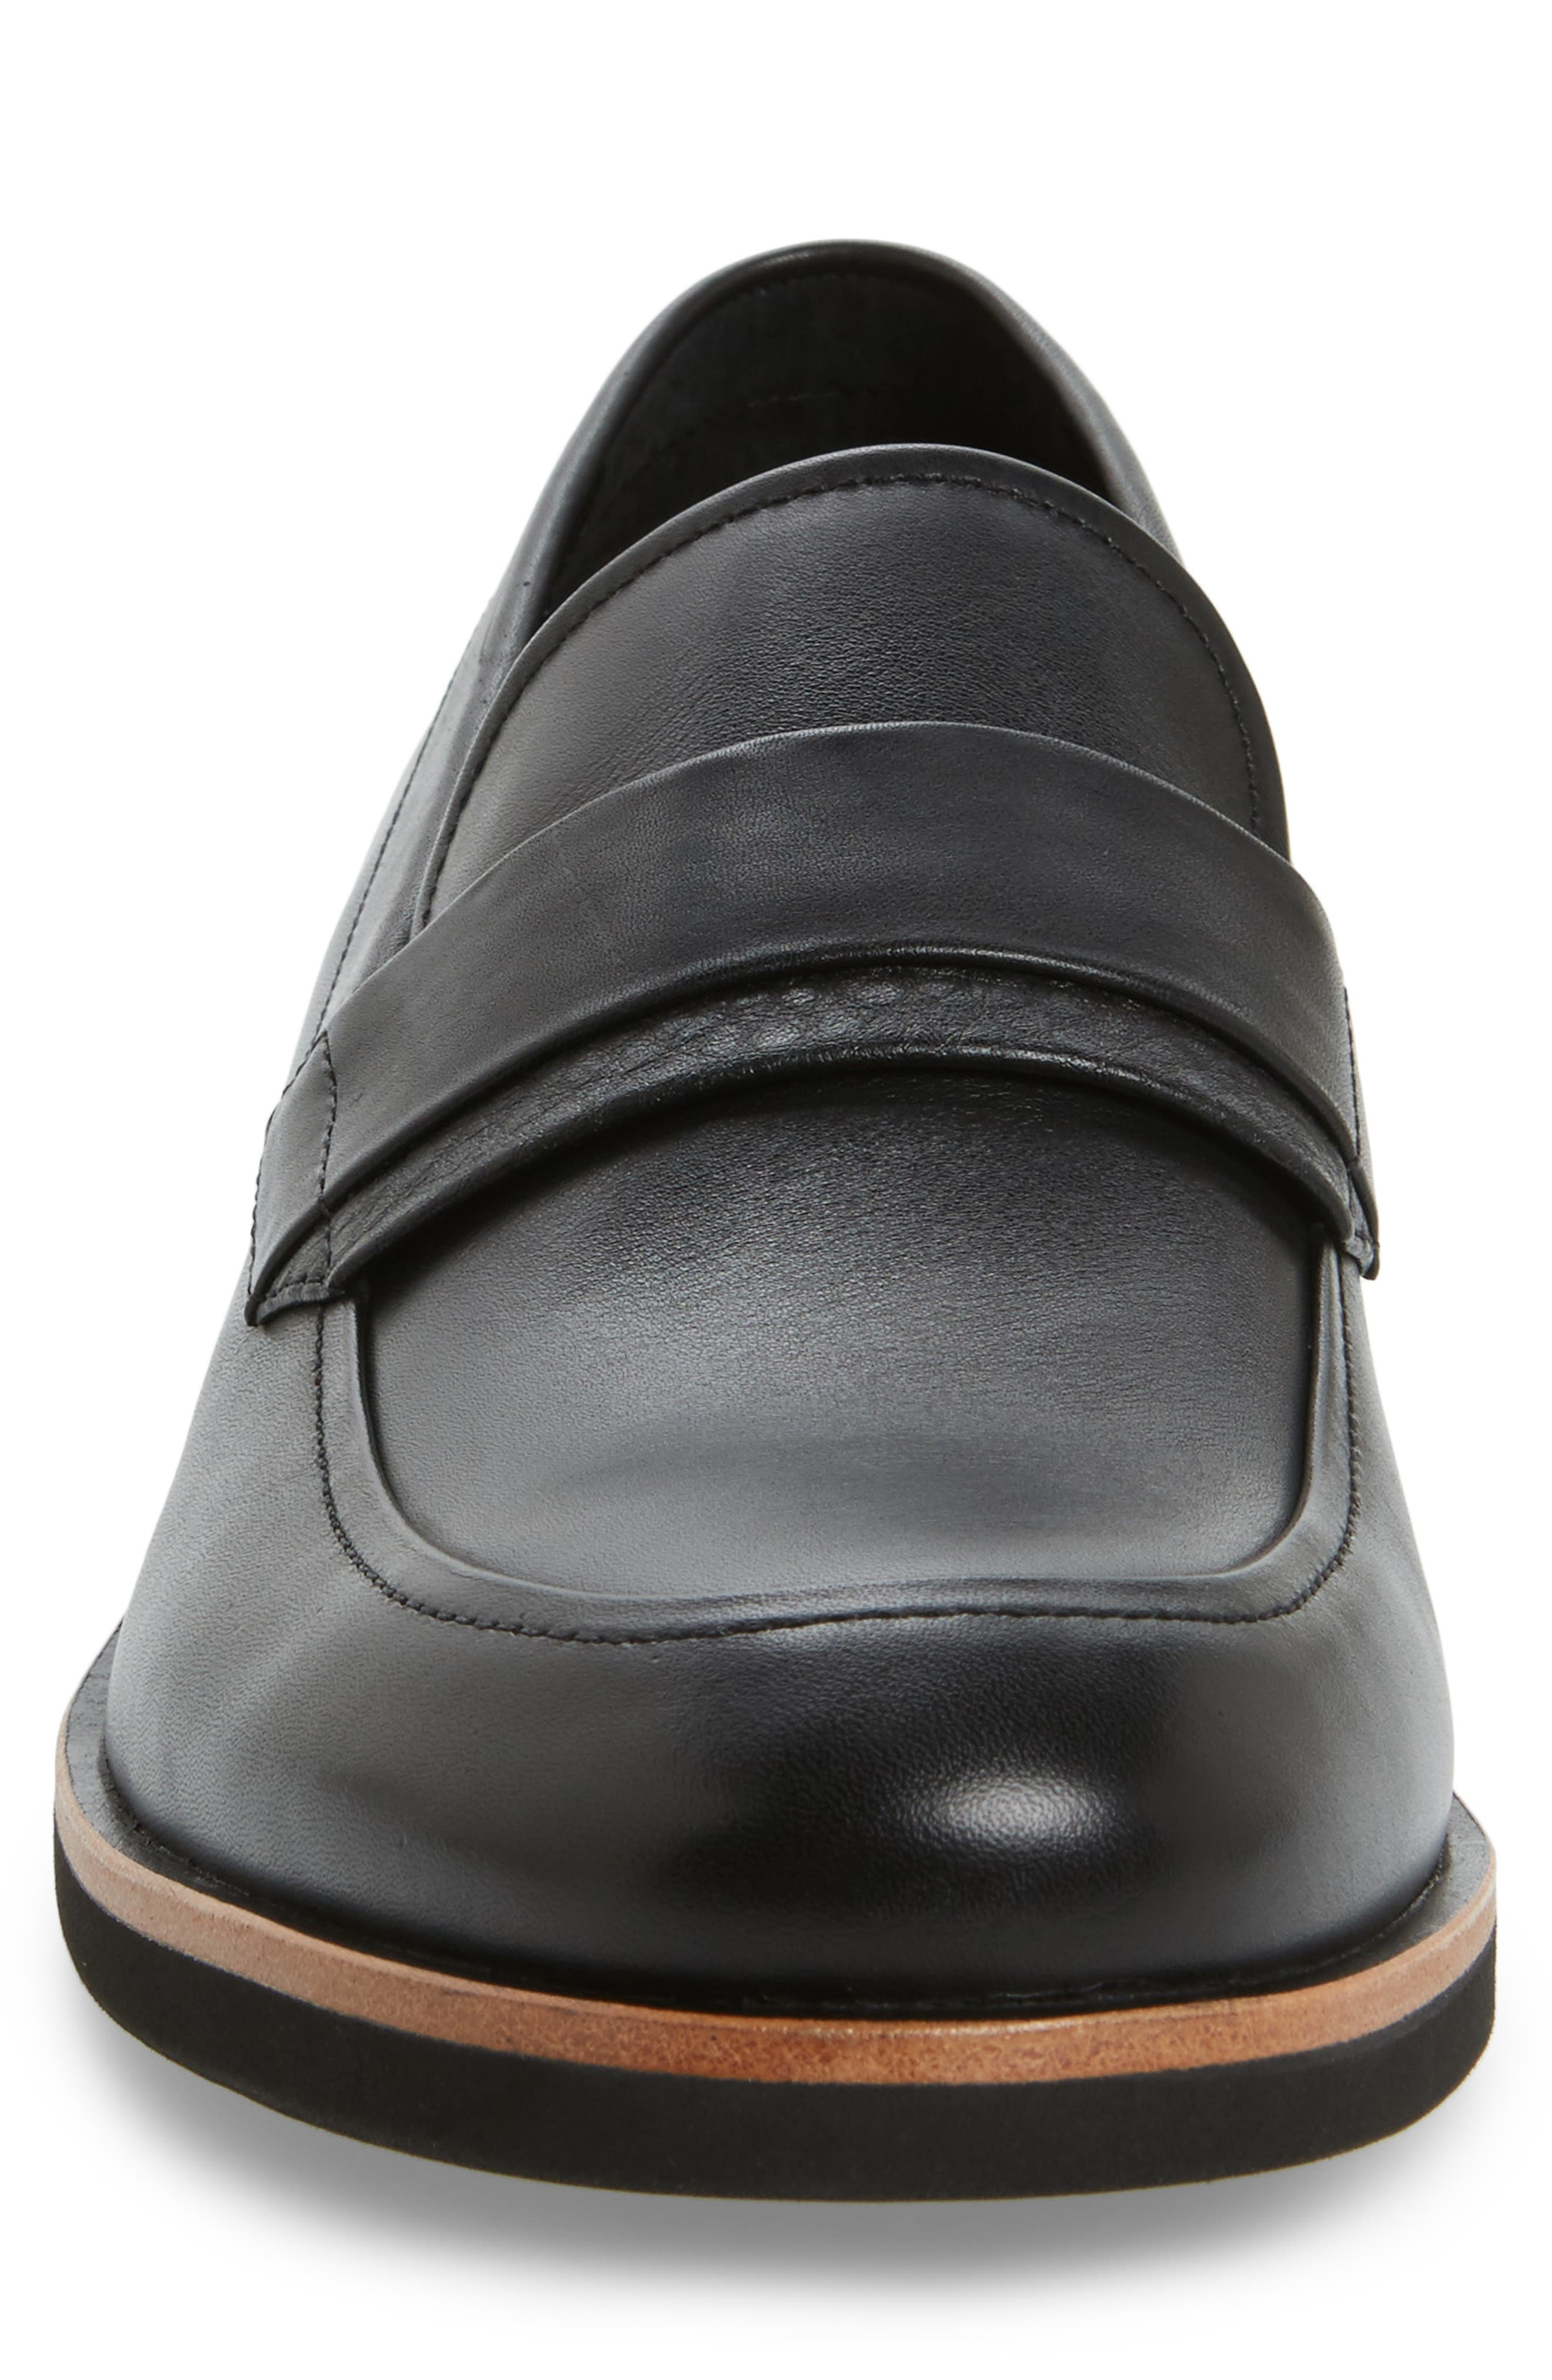 Forbes Loafer,                             Alternate thumbnail 4, color,                             001